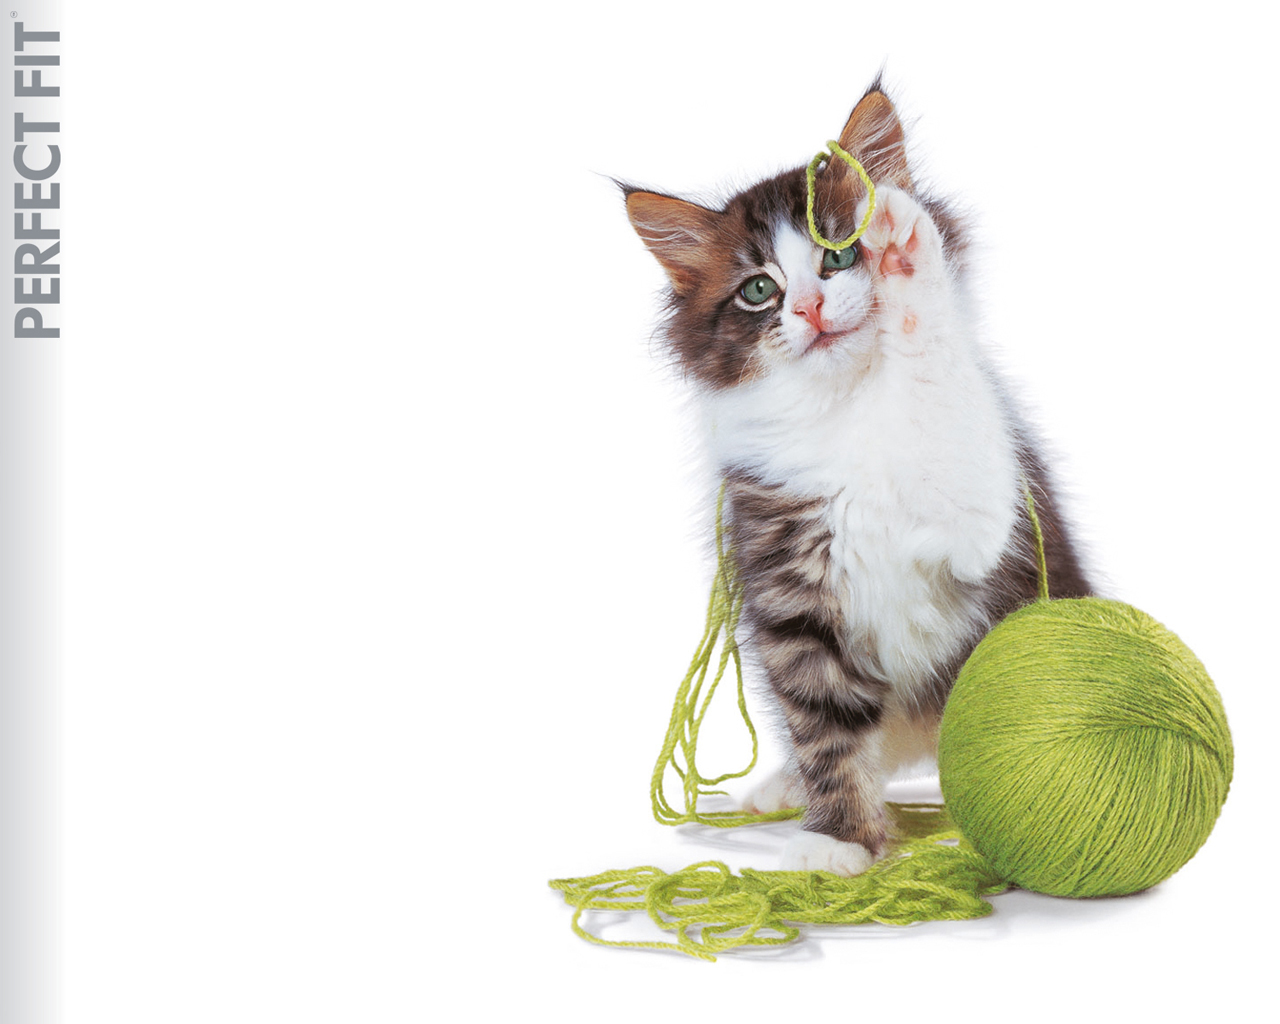 cats Kittens yarn playing HD Wallpaper